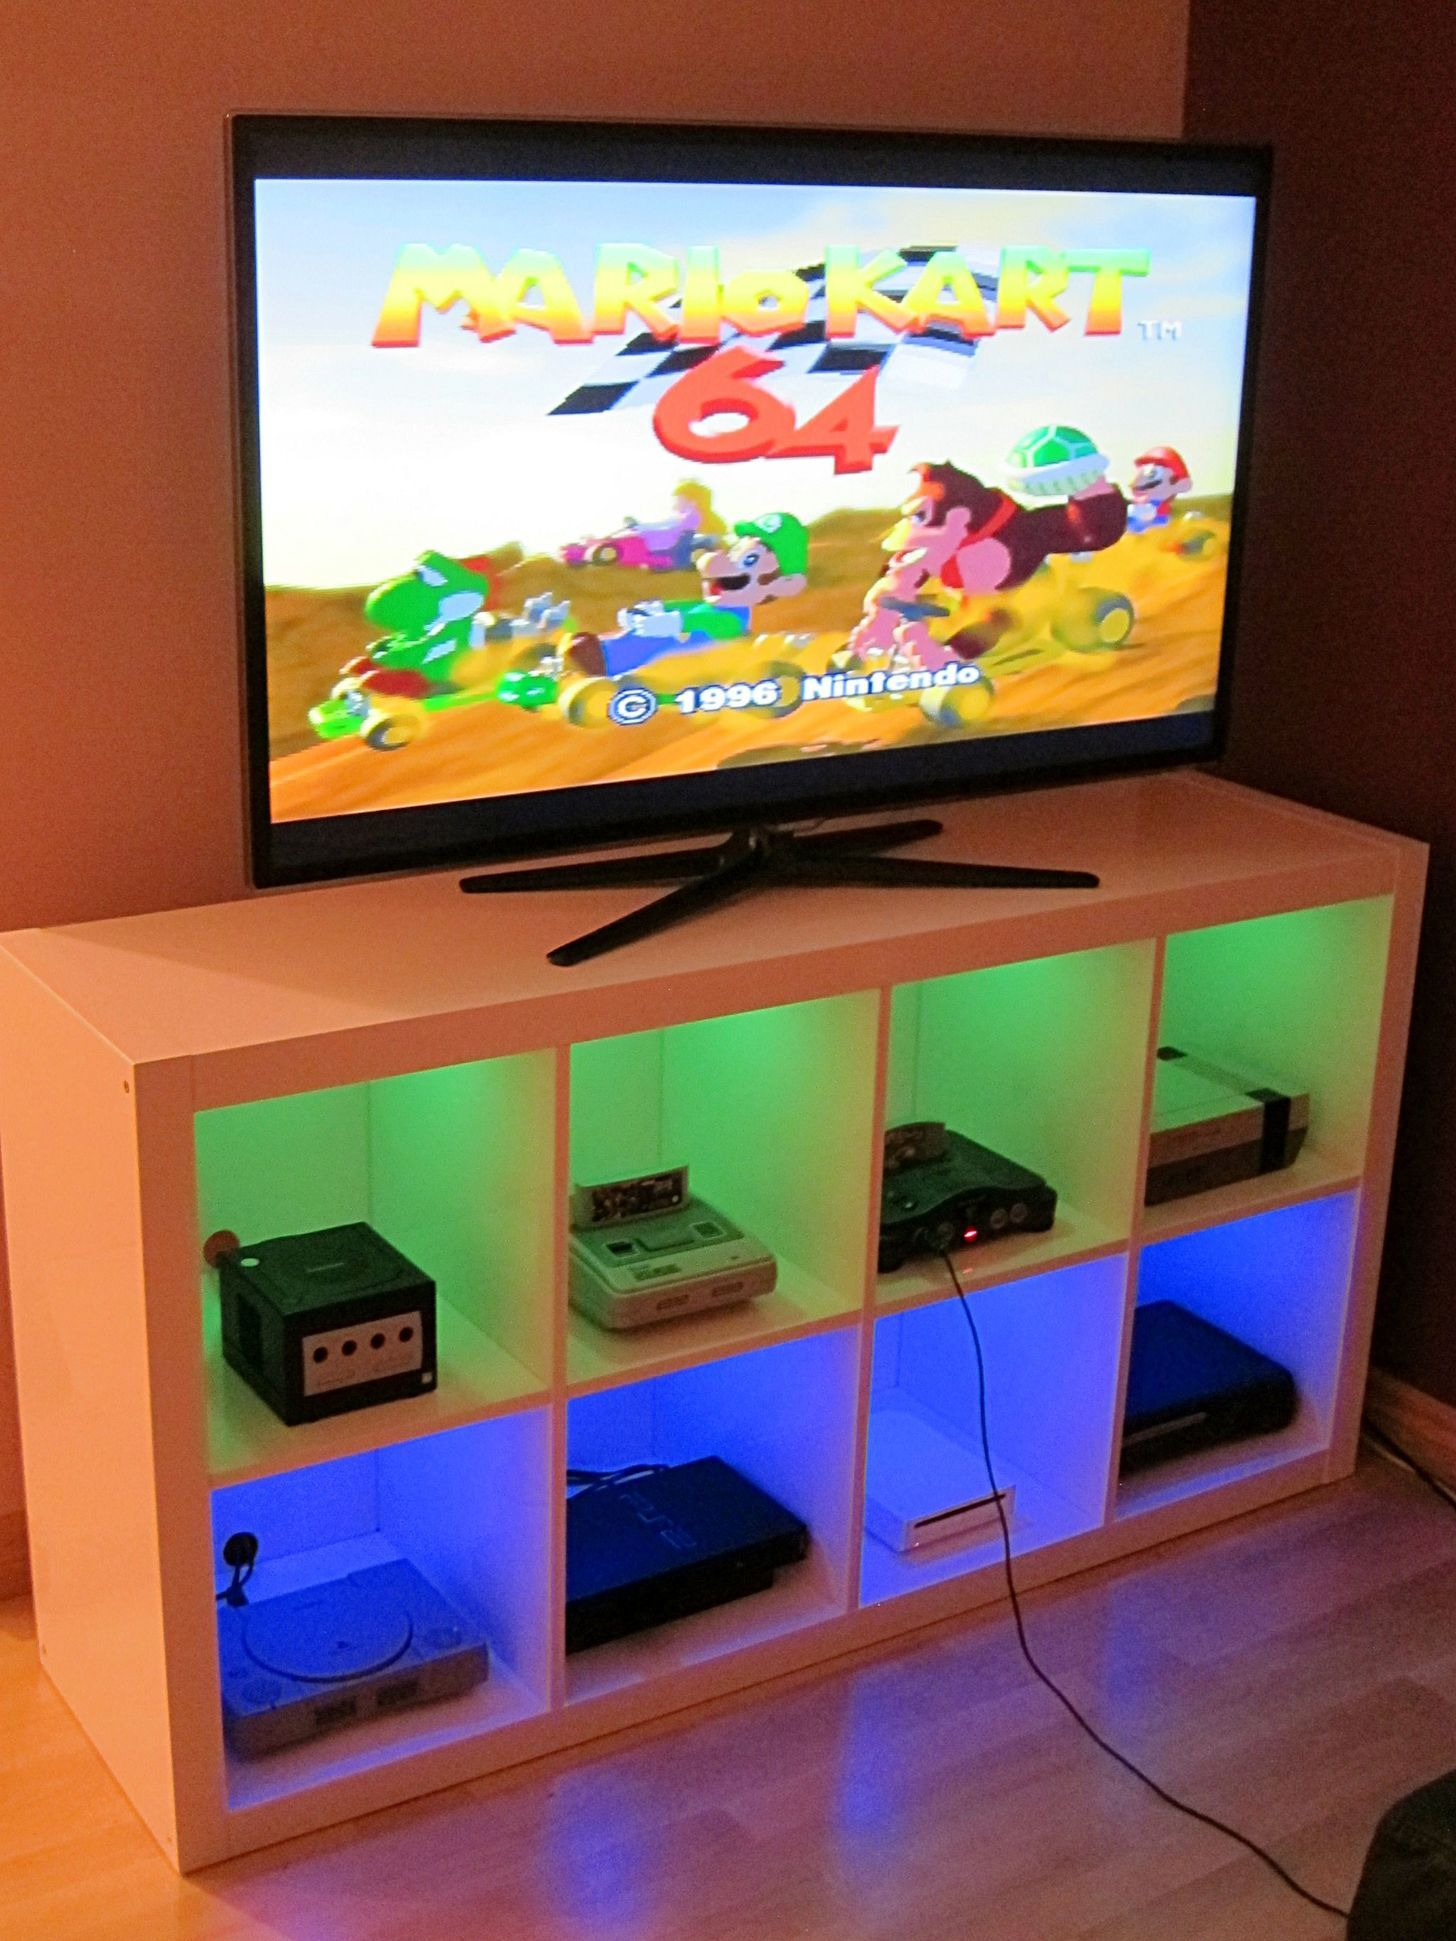 I Modified An Ikea Bookshelf To Make A Console Cabinet Very Happy With The Finished Product Unique Man Cave Ideas Game Room Design Video Game Room